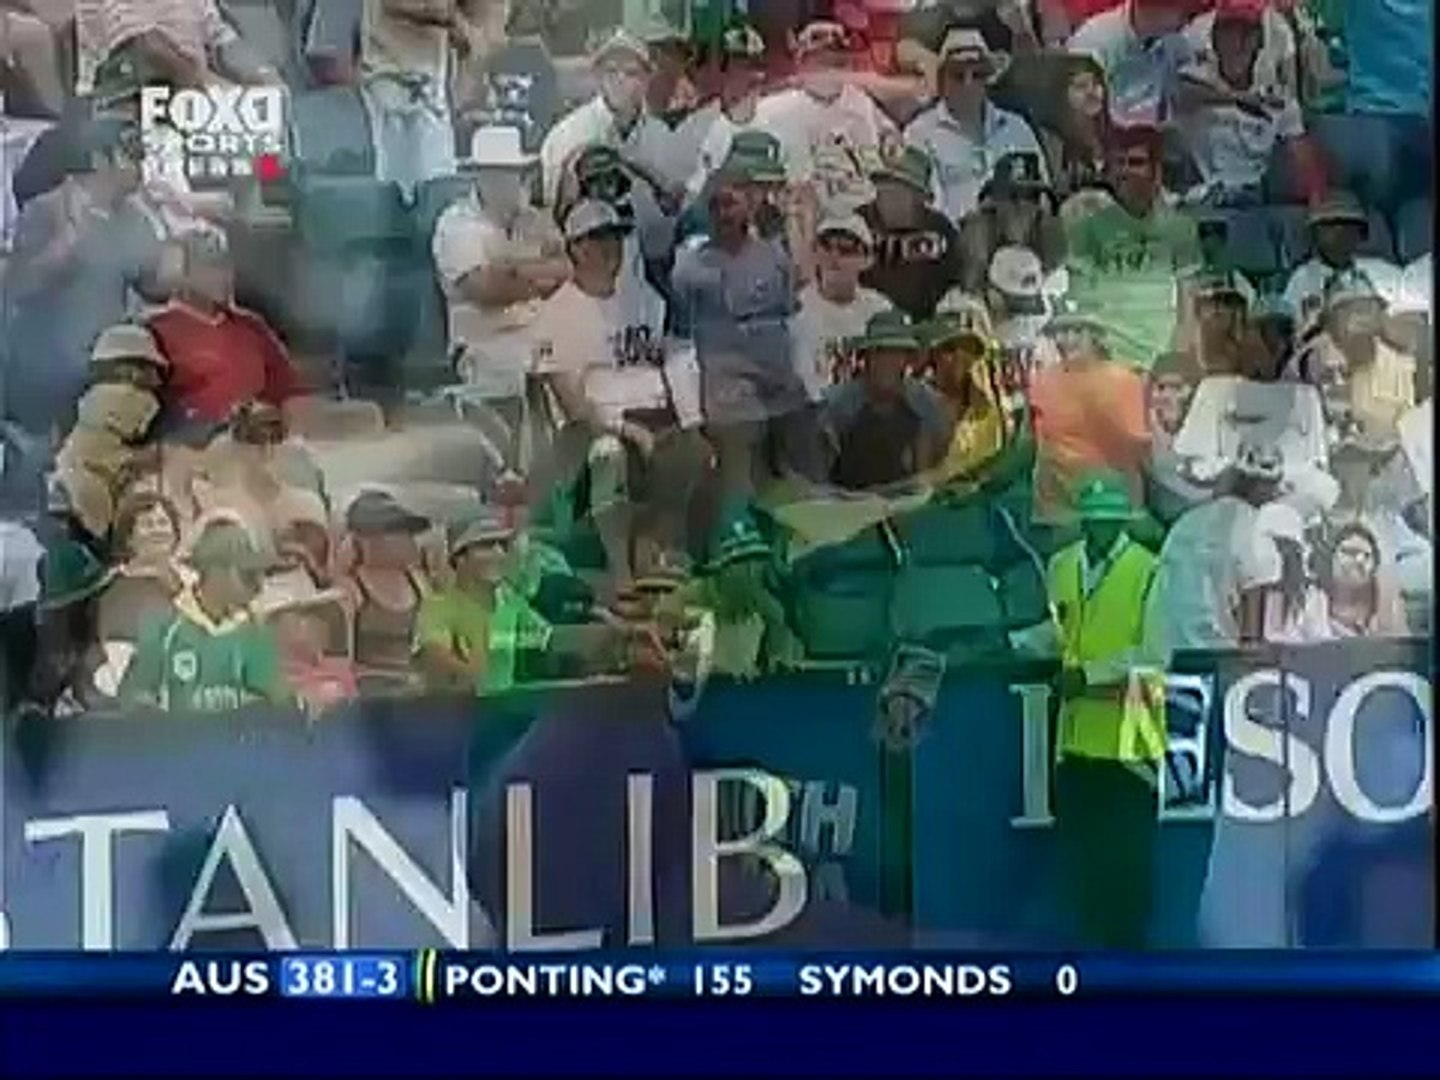 21 runs in 1 ball -  South Africa vs Australia World Record Match 2006